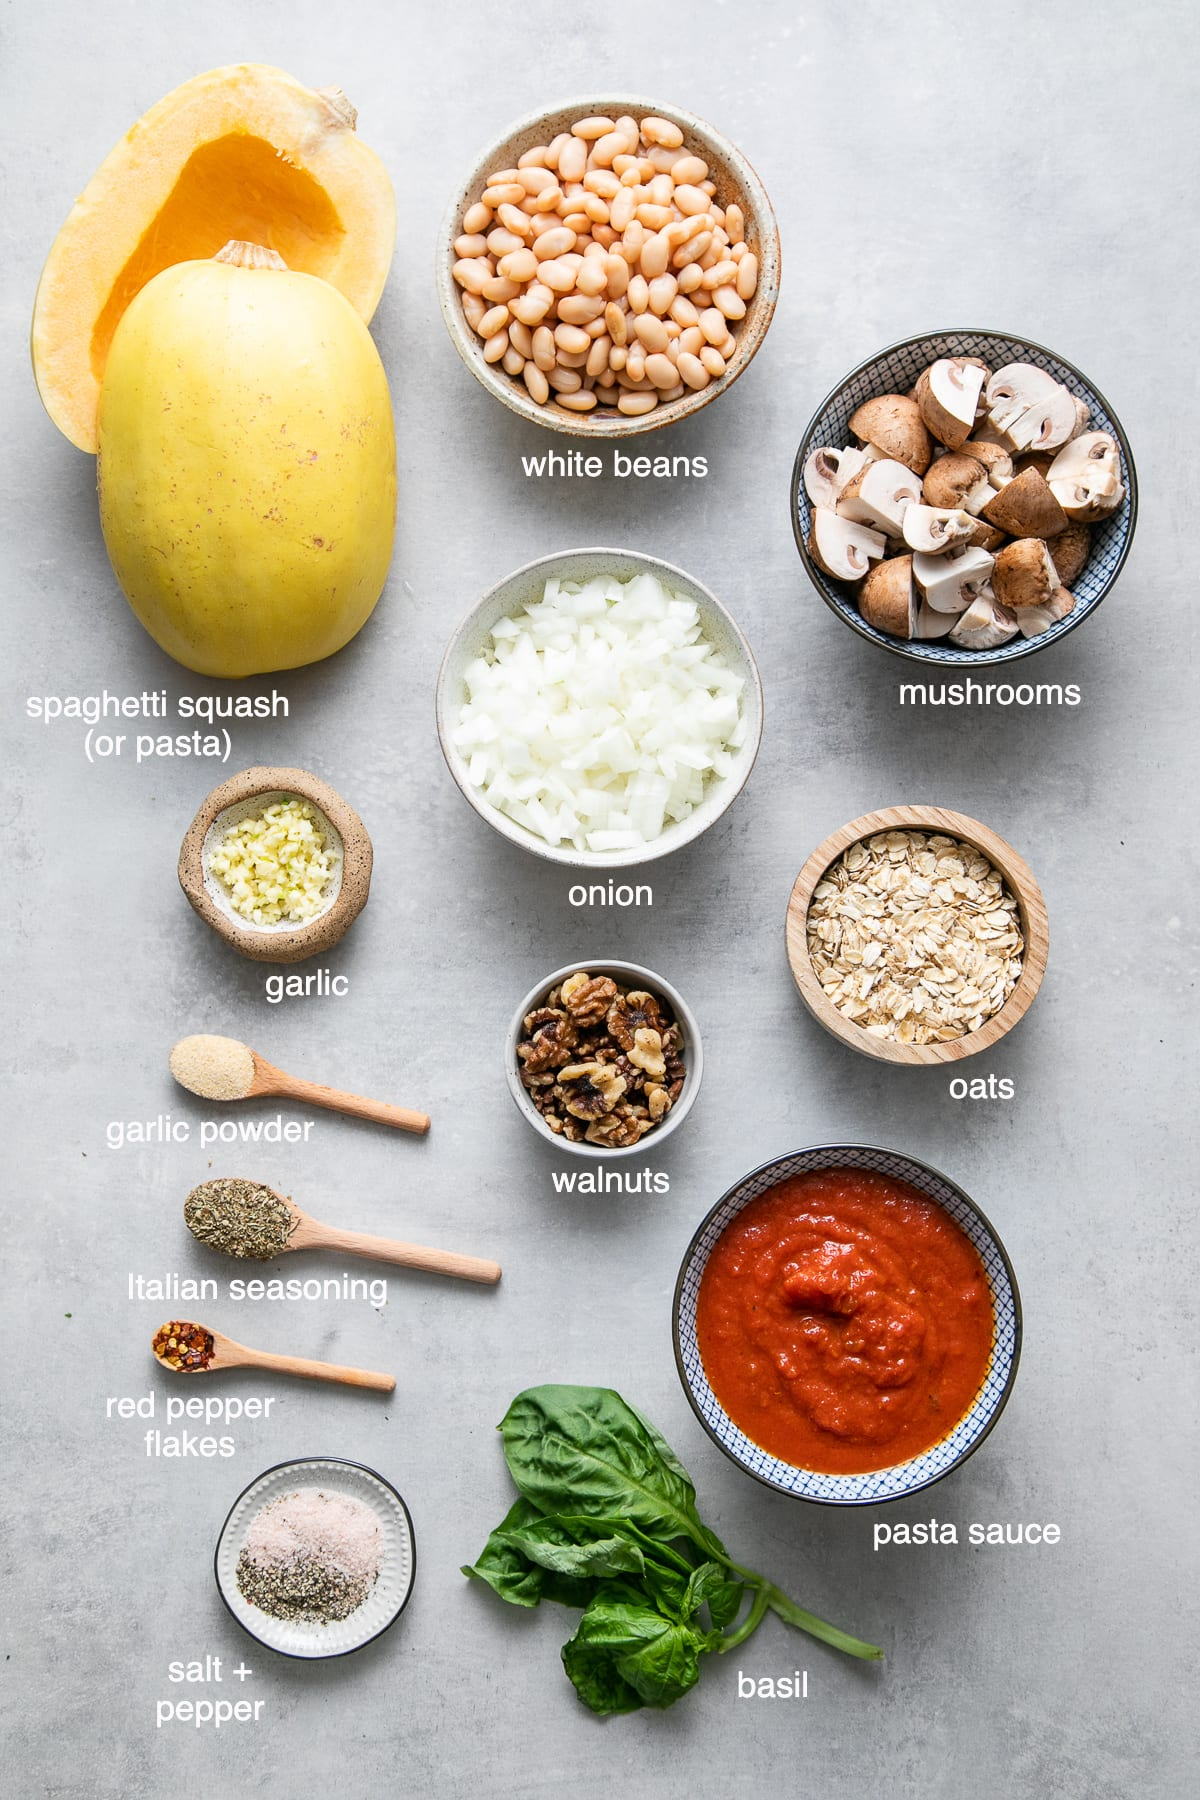 top down view of ingredients used to make spaghetti and vegan meatballs.